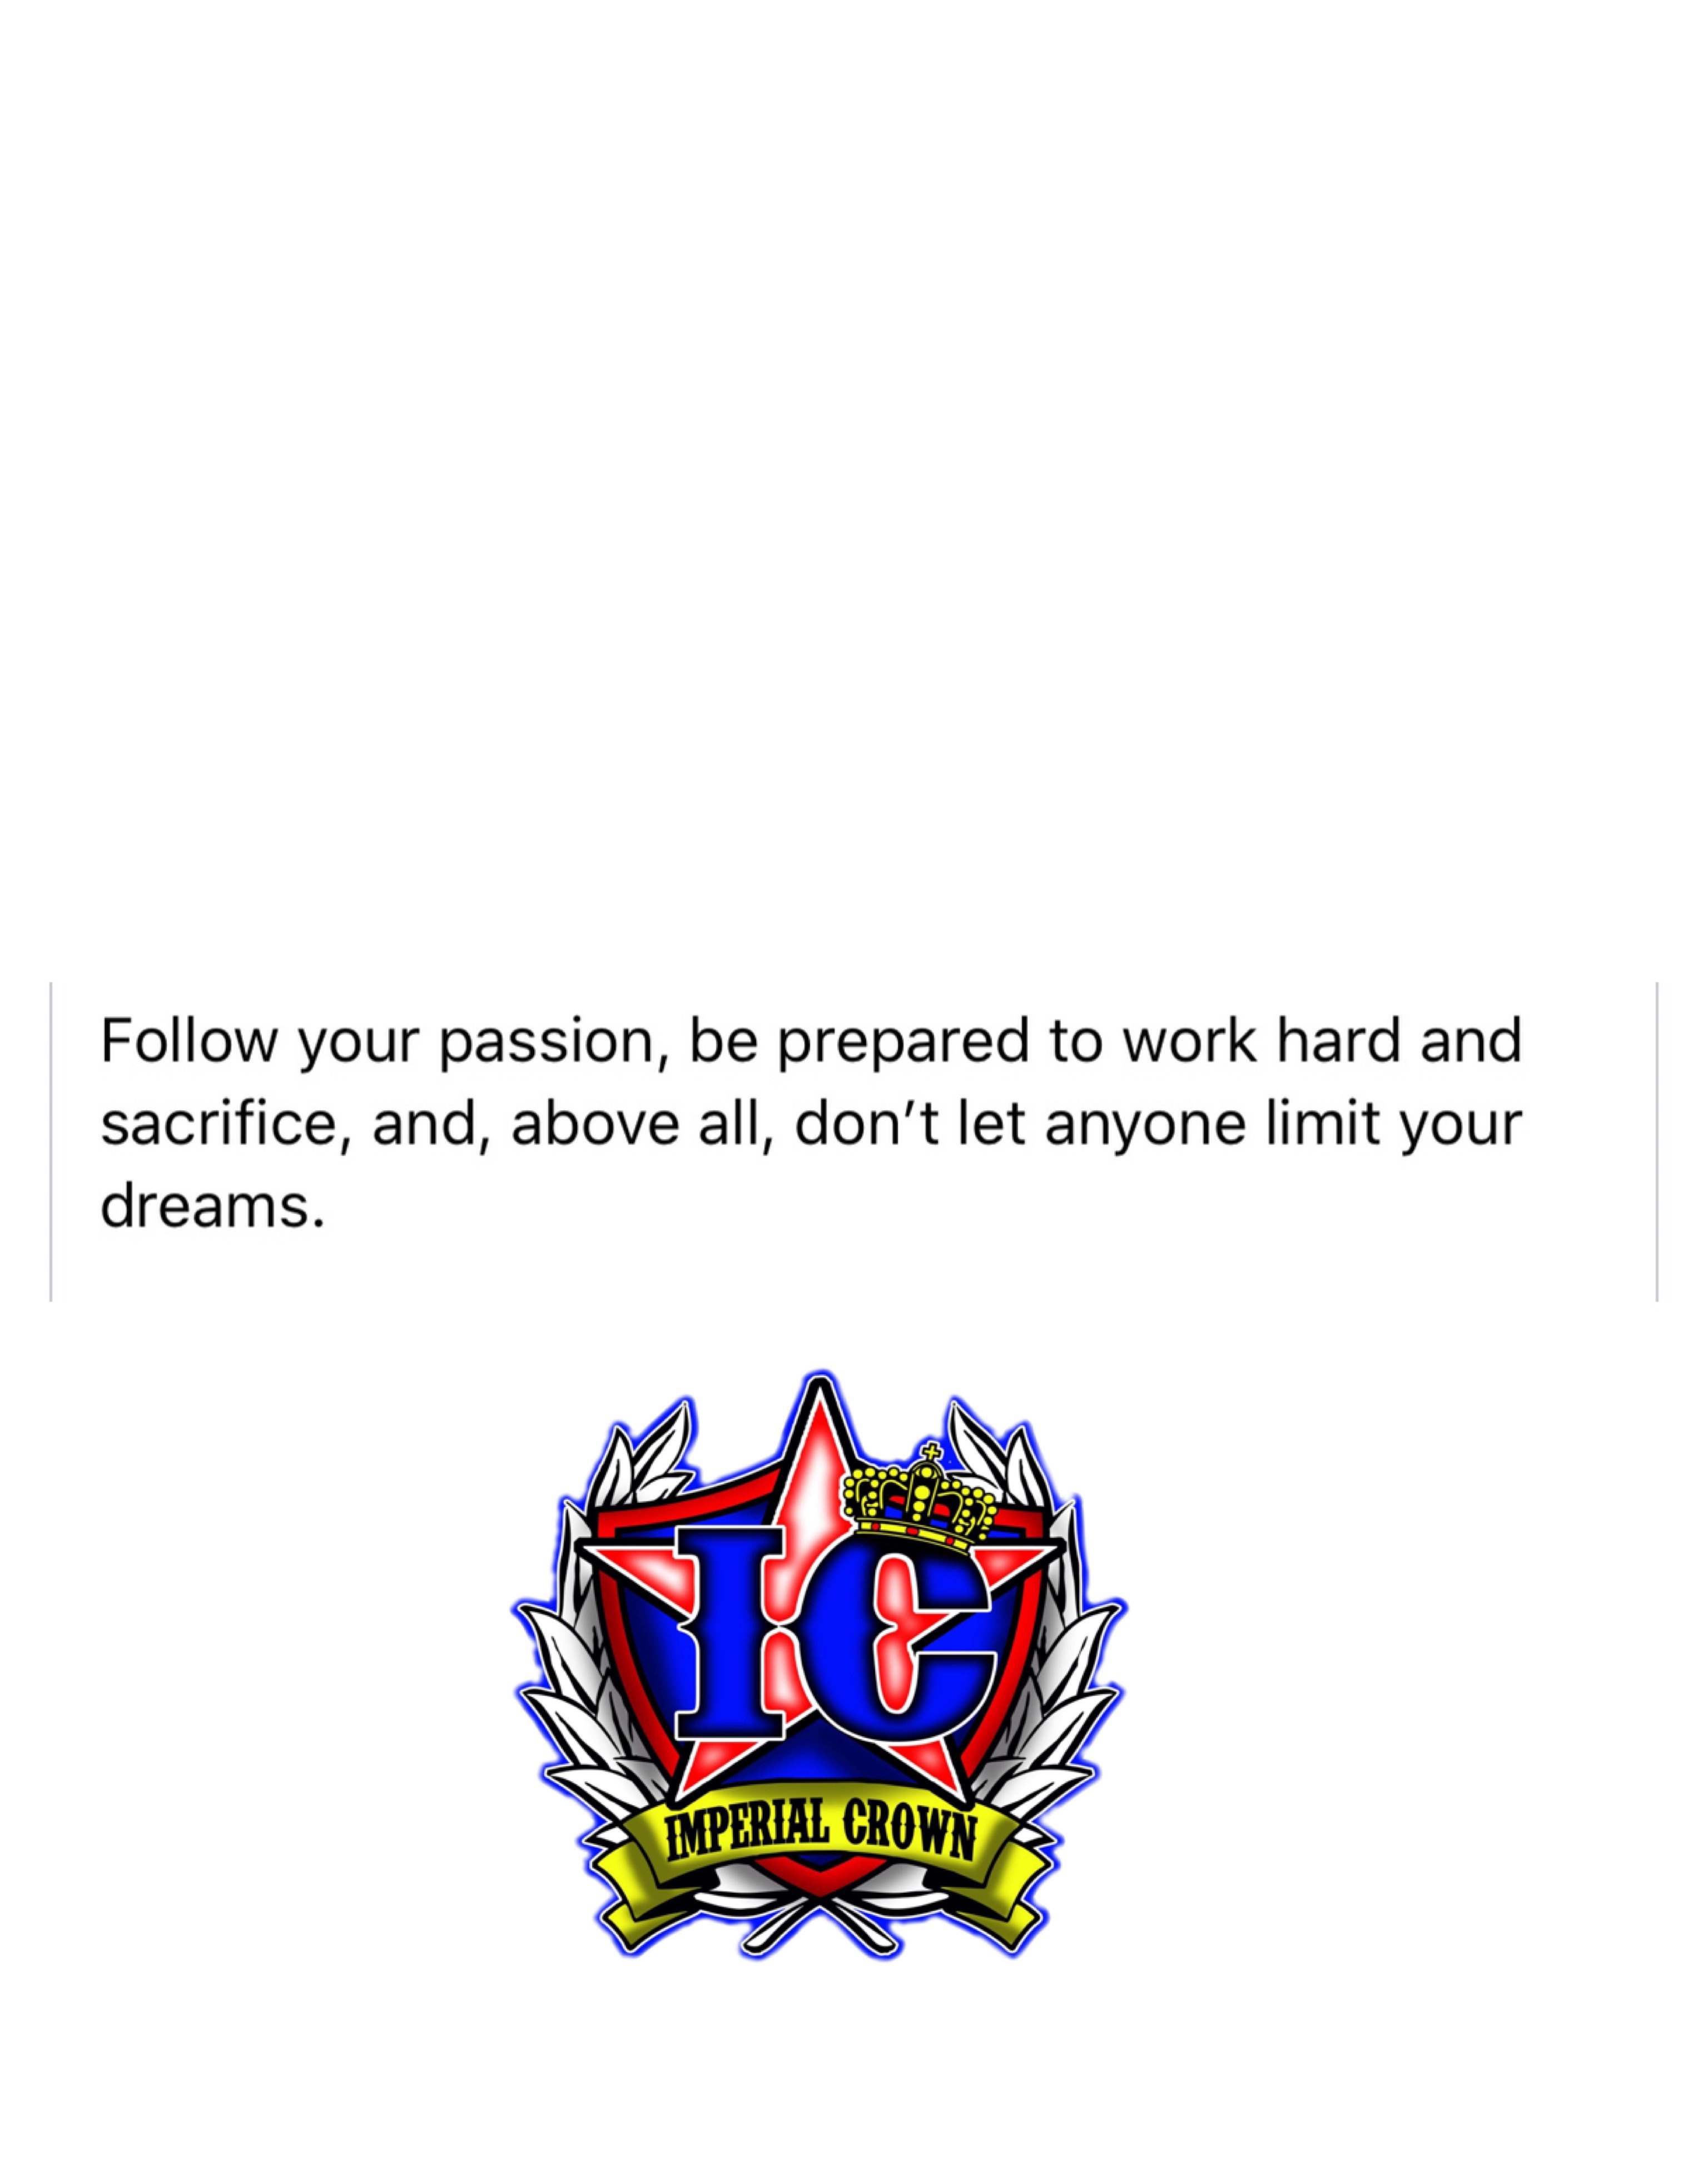 Follow your passion be prepared to work hard and sacrifice and above all don't let anyone limit your dreams